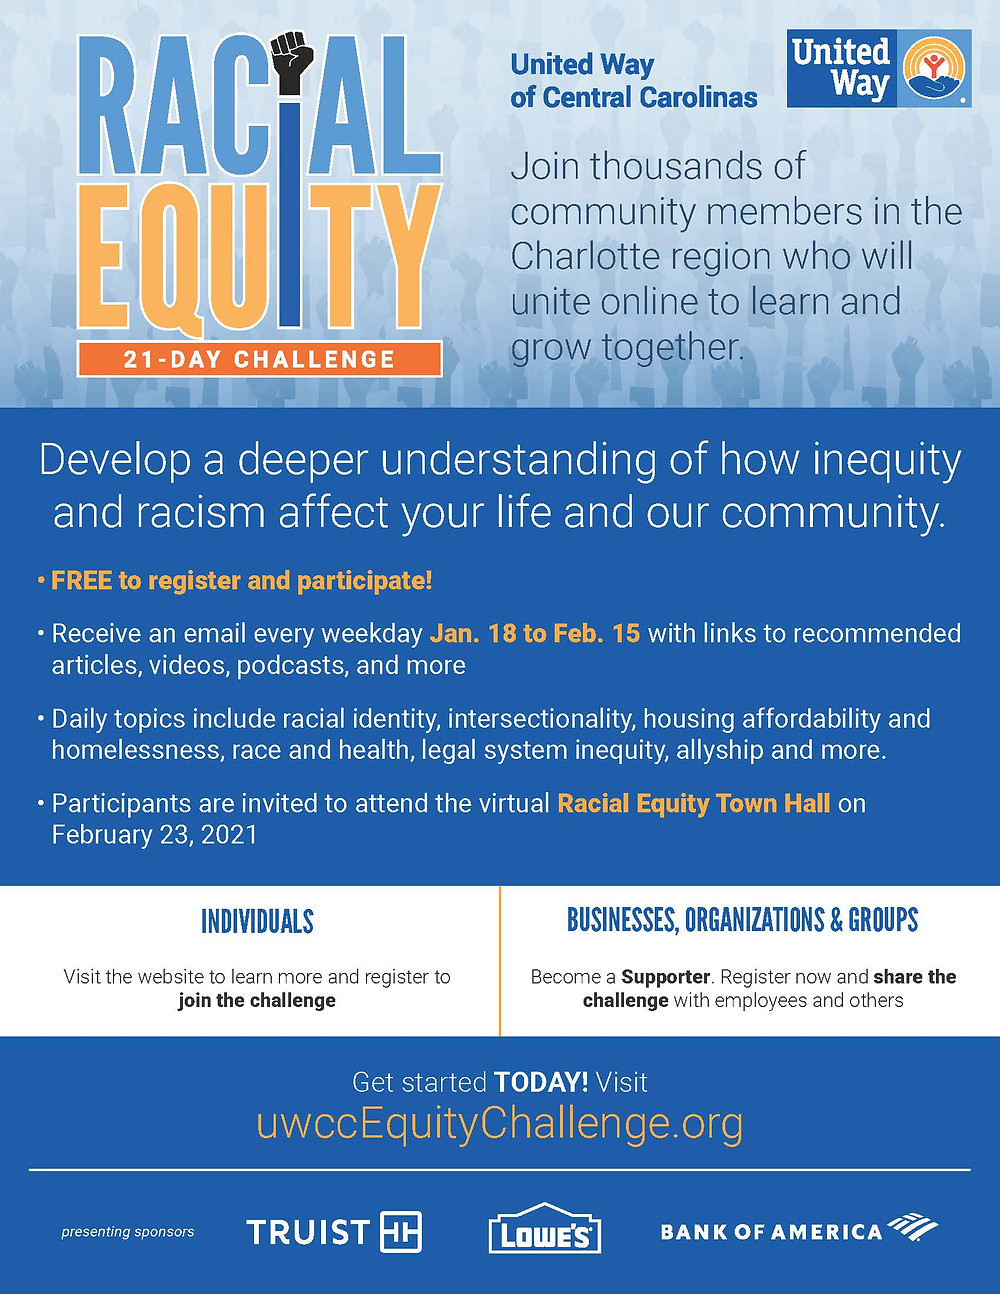 Racial Equity 21-Day Challenge, MeckMIN, United Way of Central Carolinas